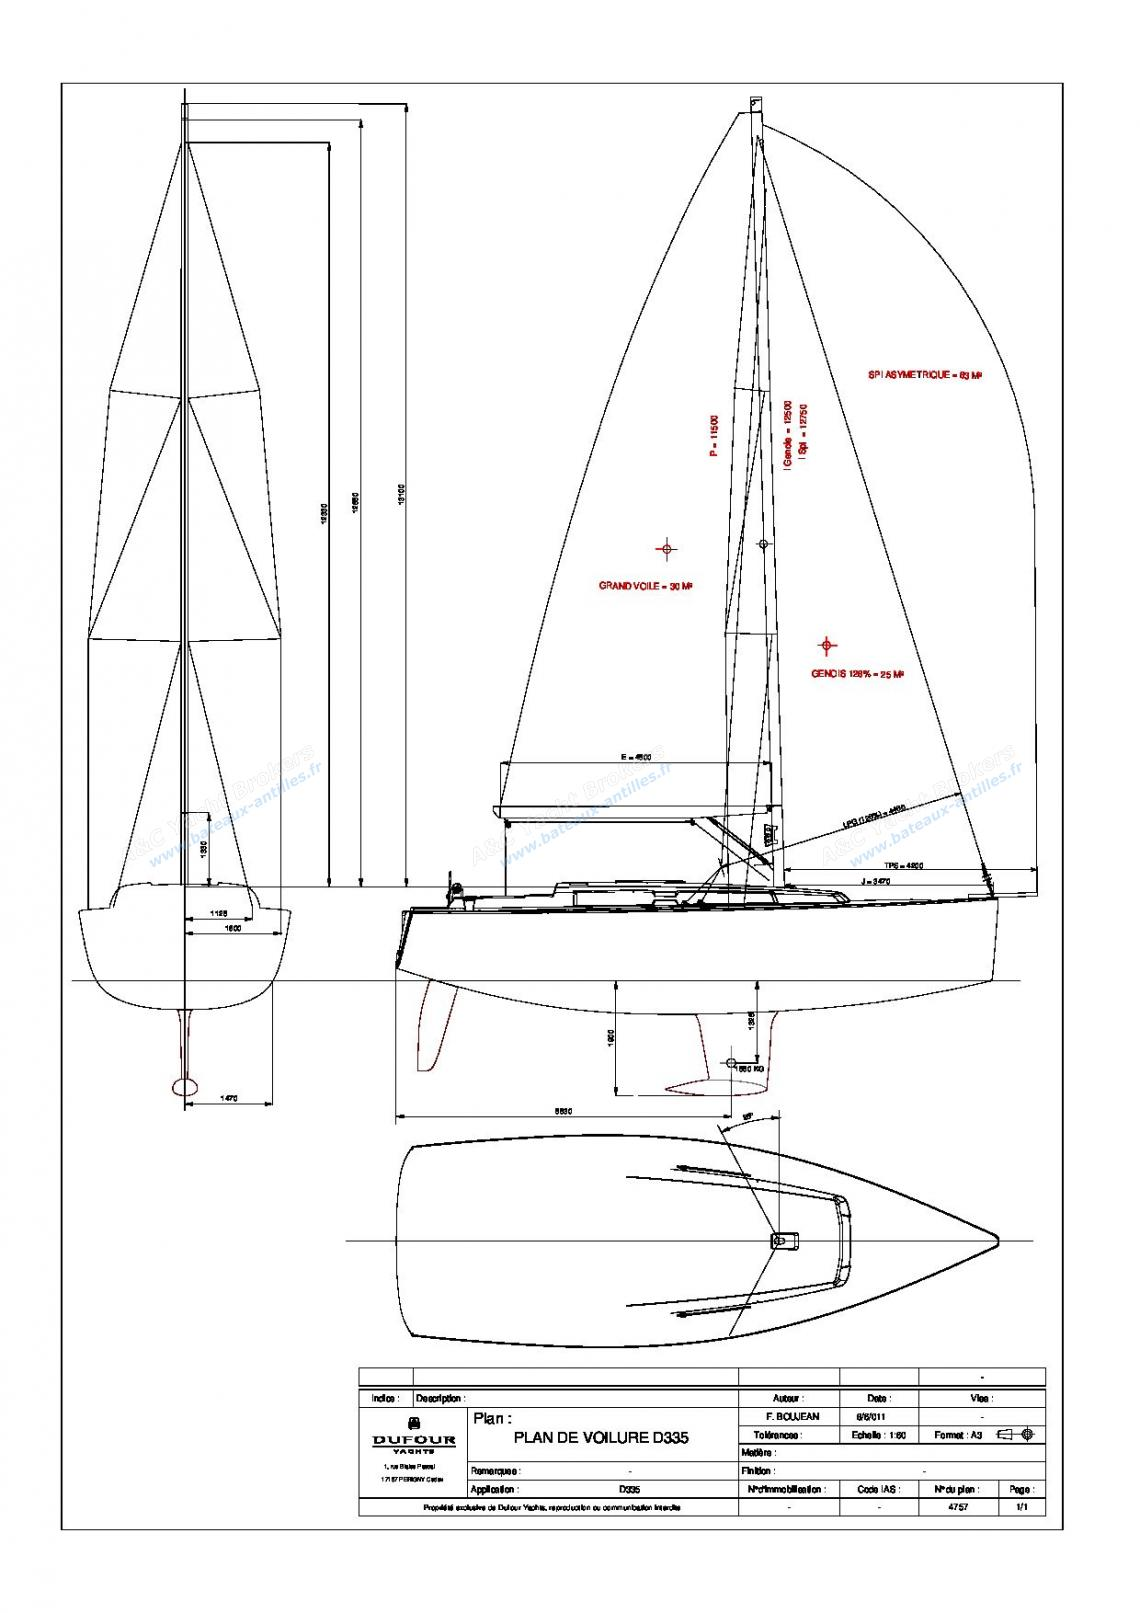 Dufour 335 Grand Large - rig_plan.jpg